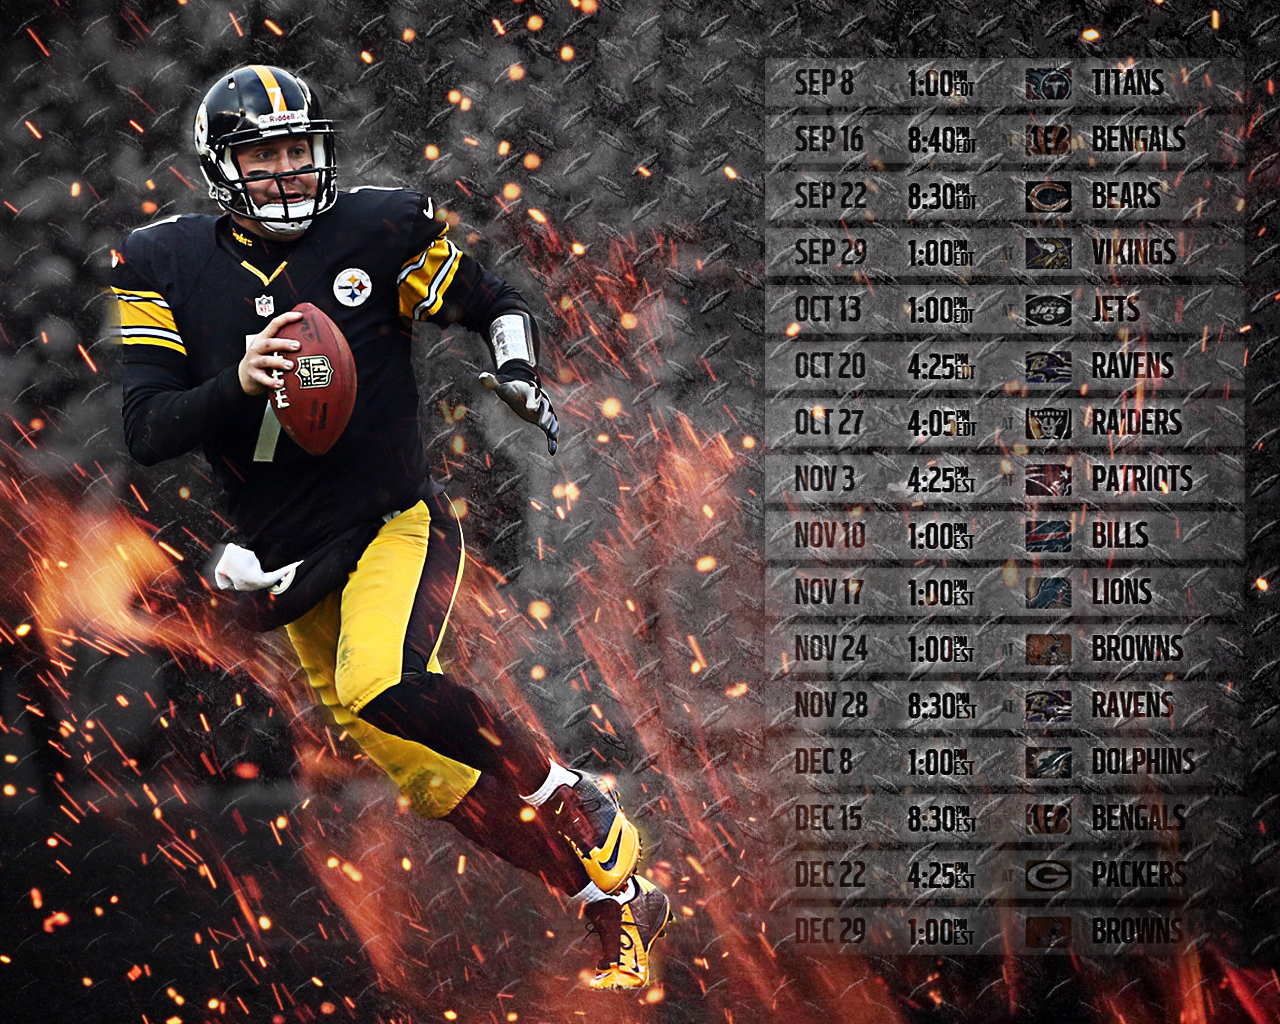 Ben Roethlisberger steelers 2013 14 schedule wallpaper 1280x1024